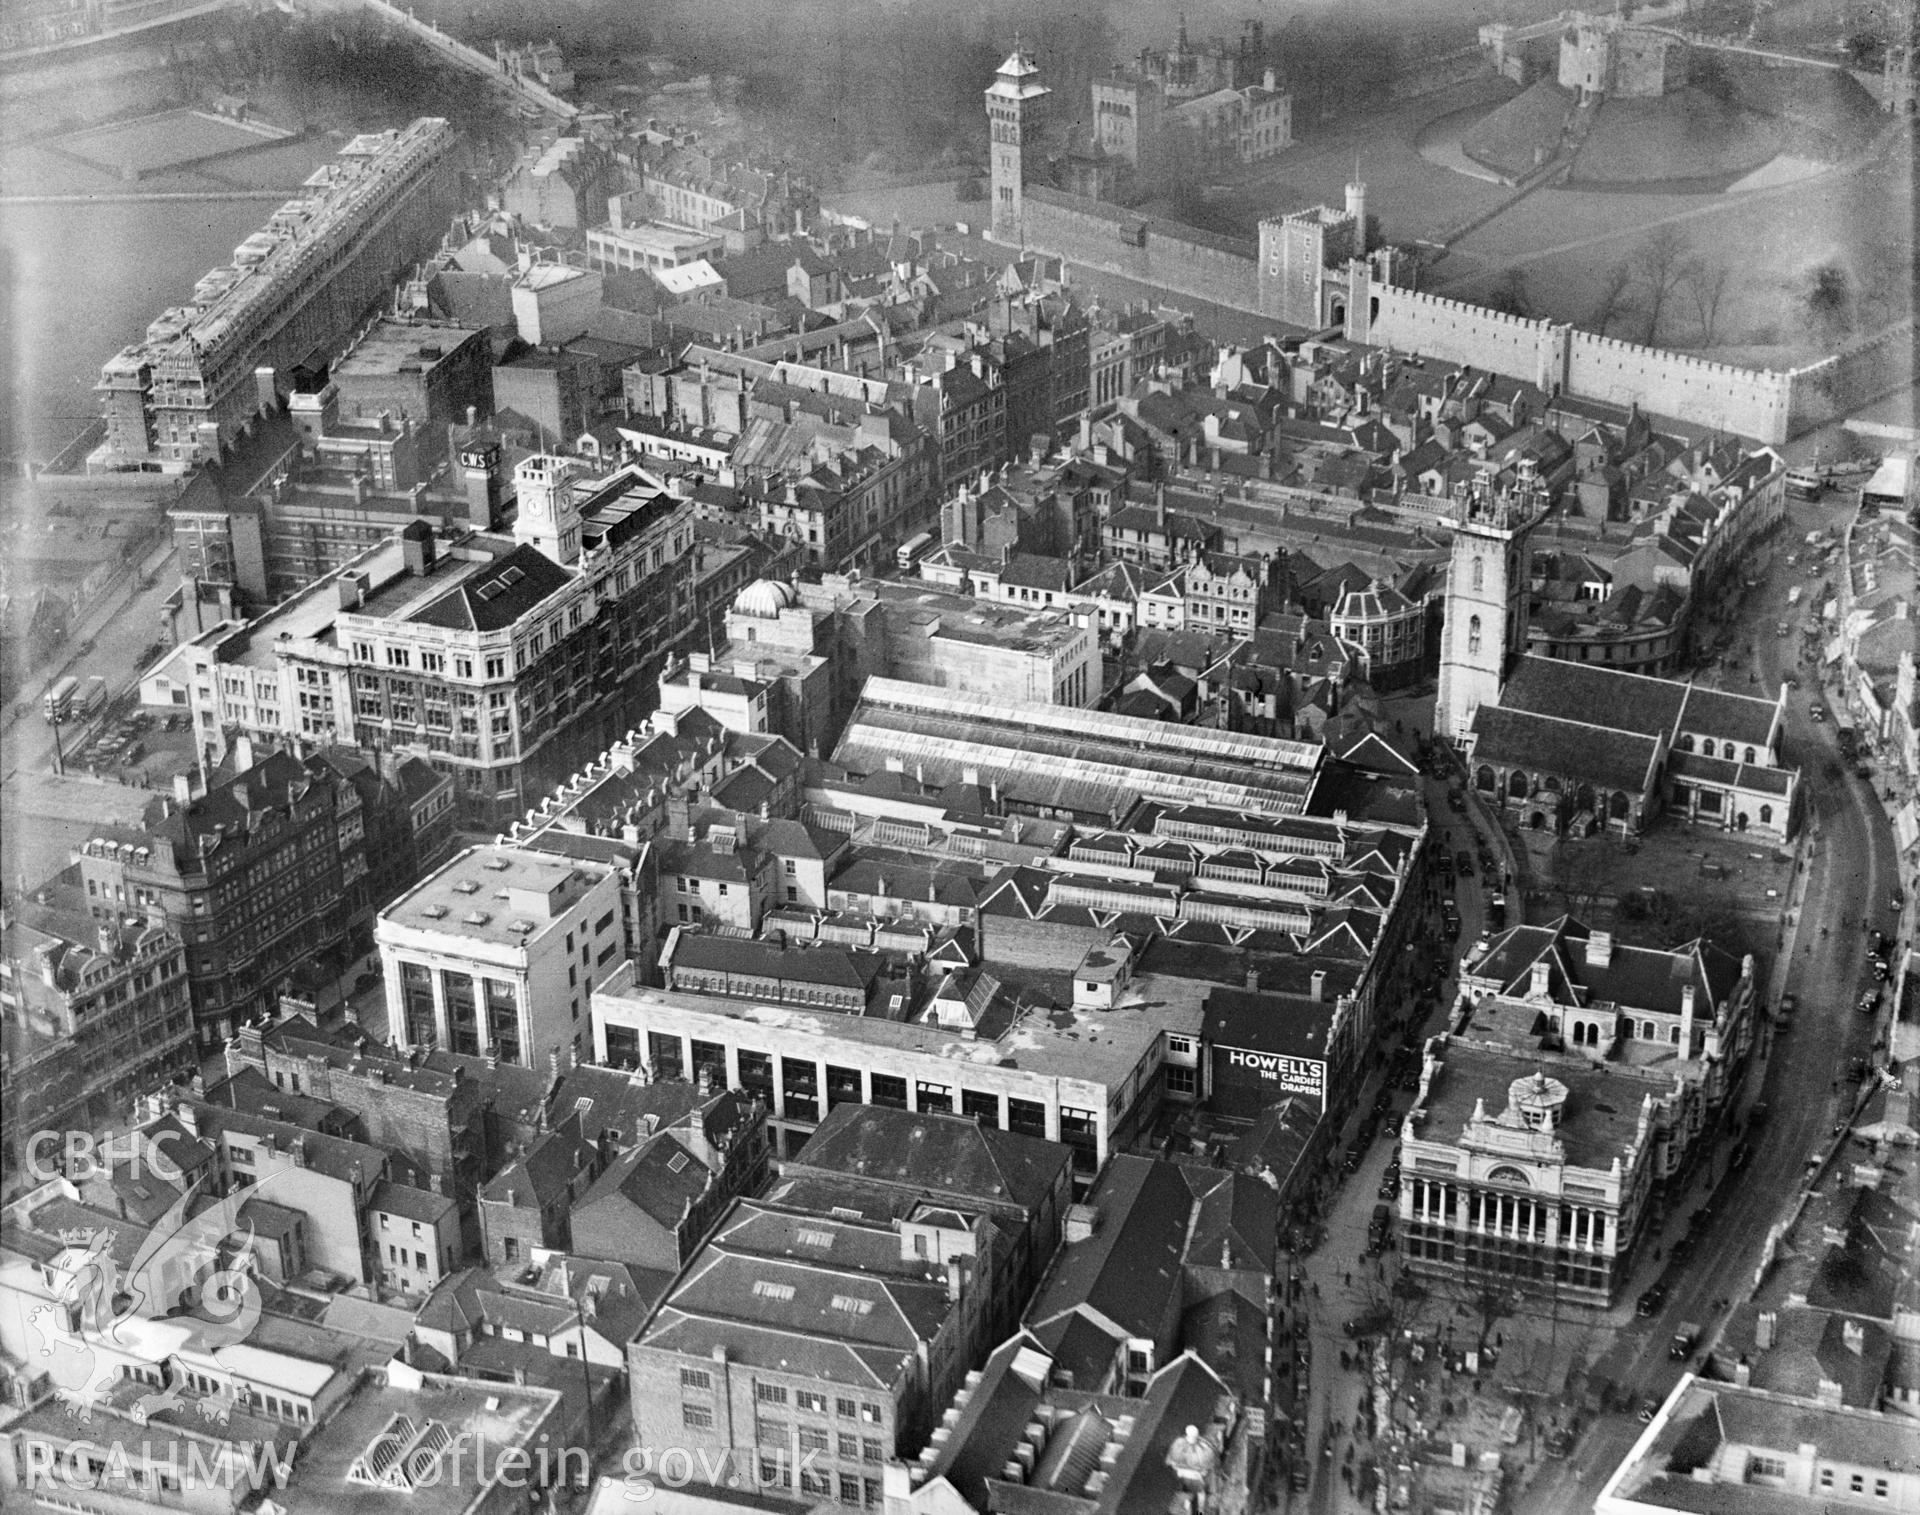 View of central Cardiff, showing James Howell & Co. Ltd. and central library, oblique aerial view. 5?x4? black and white glass plate negative.